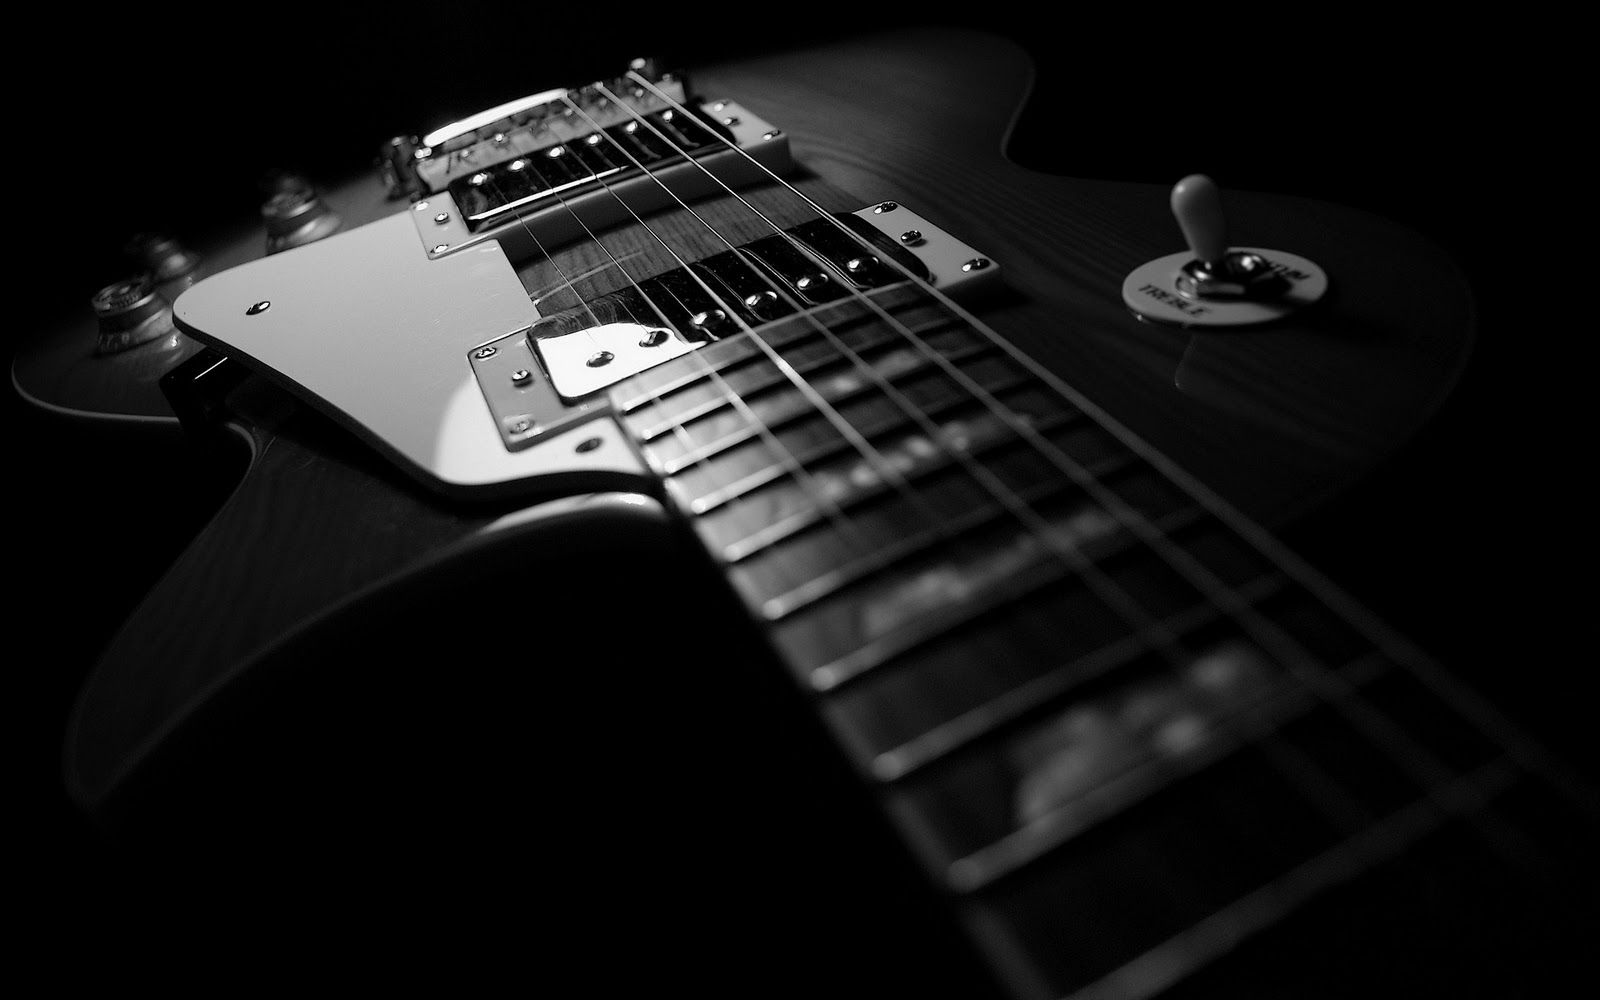 Gibson Guitar Wallpapers Group (80+)